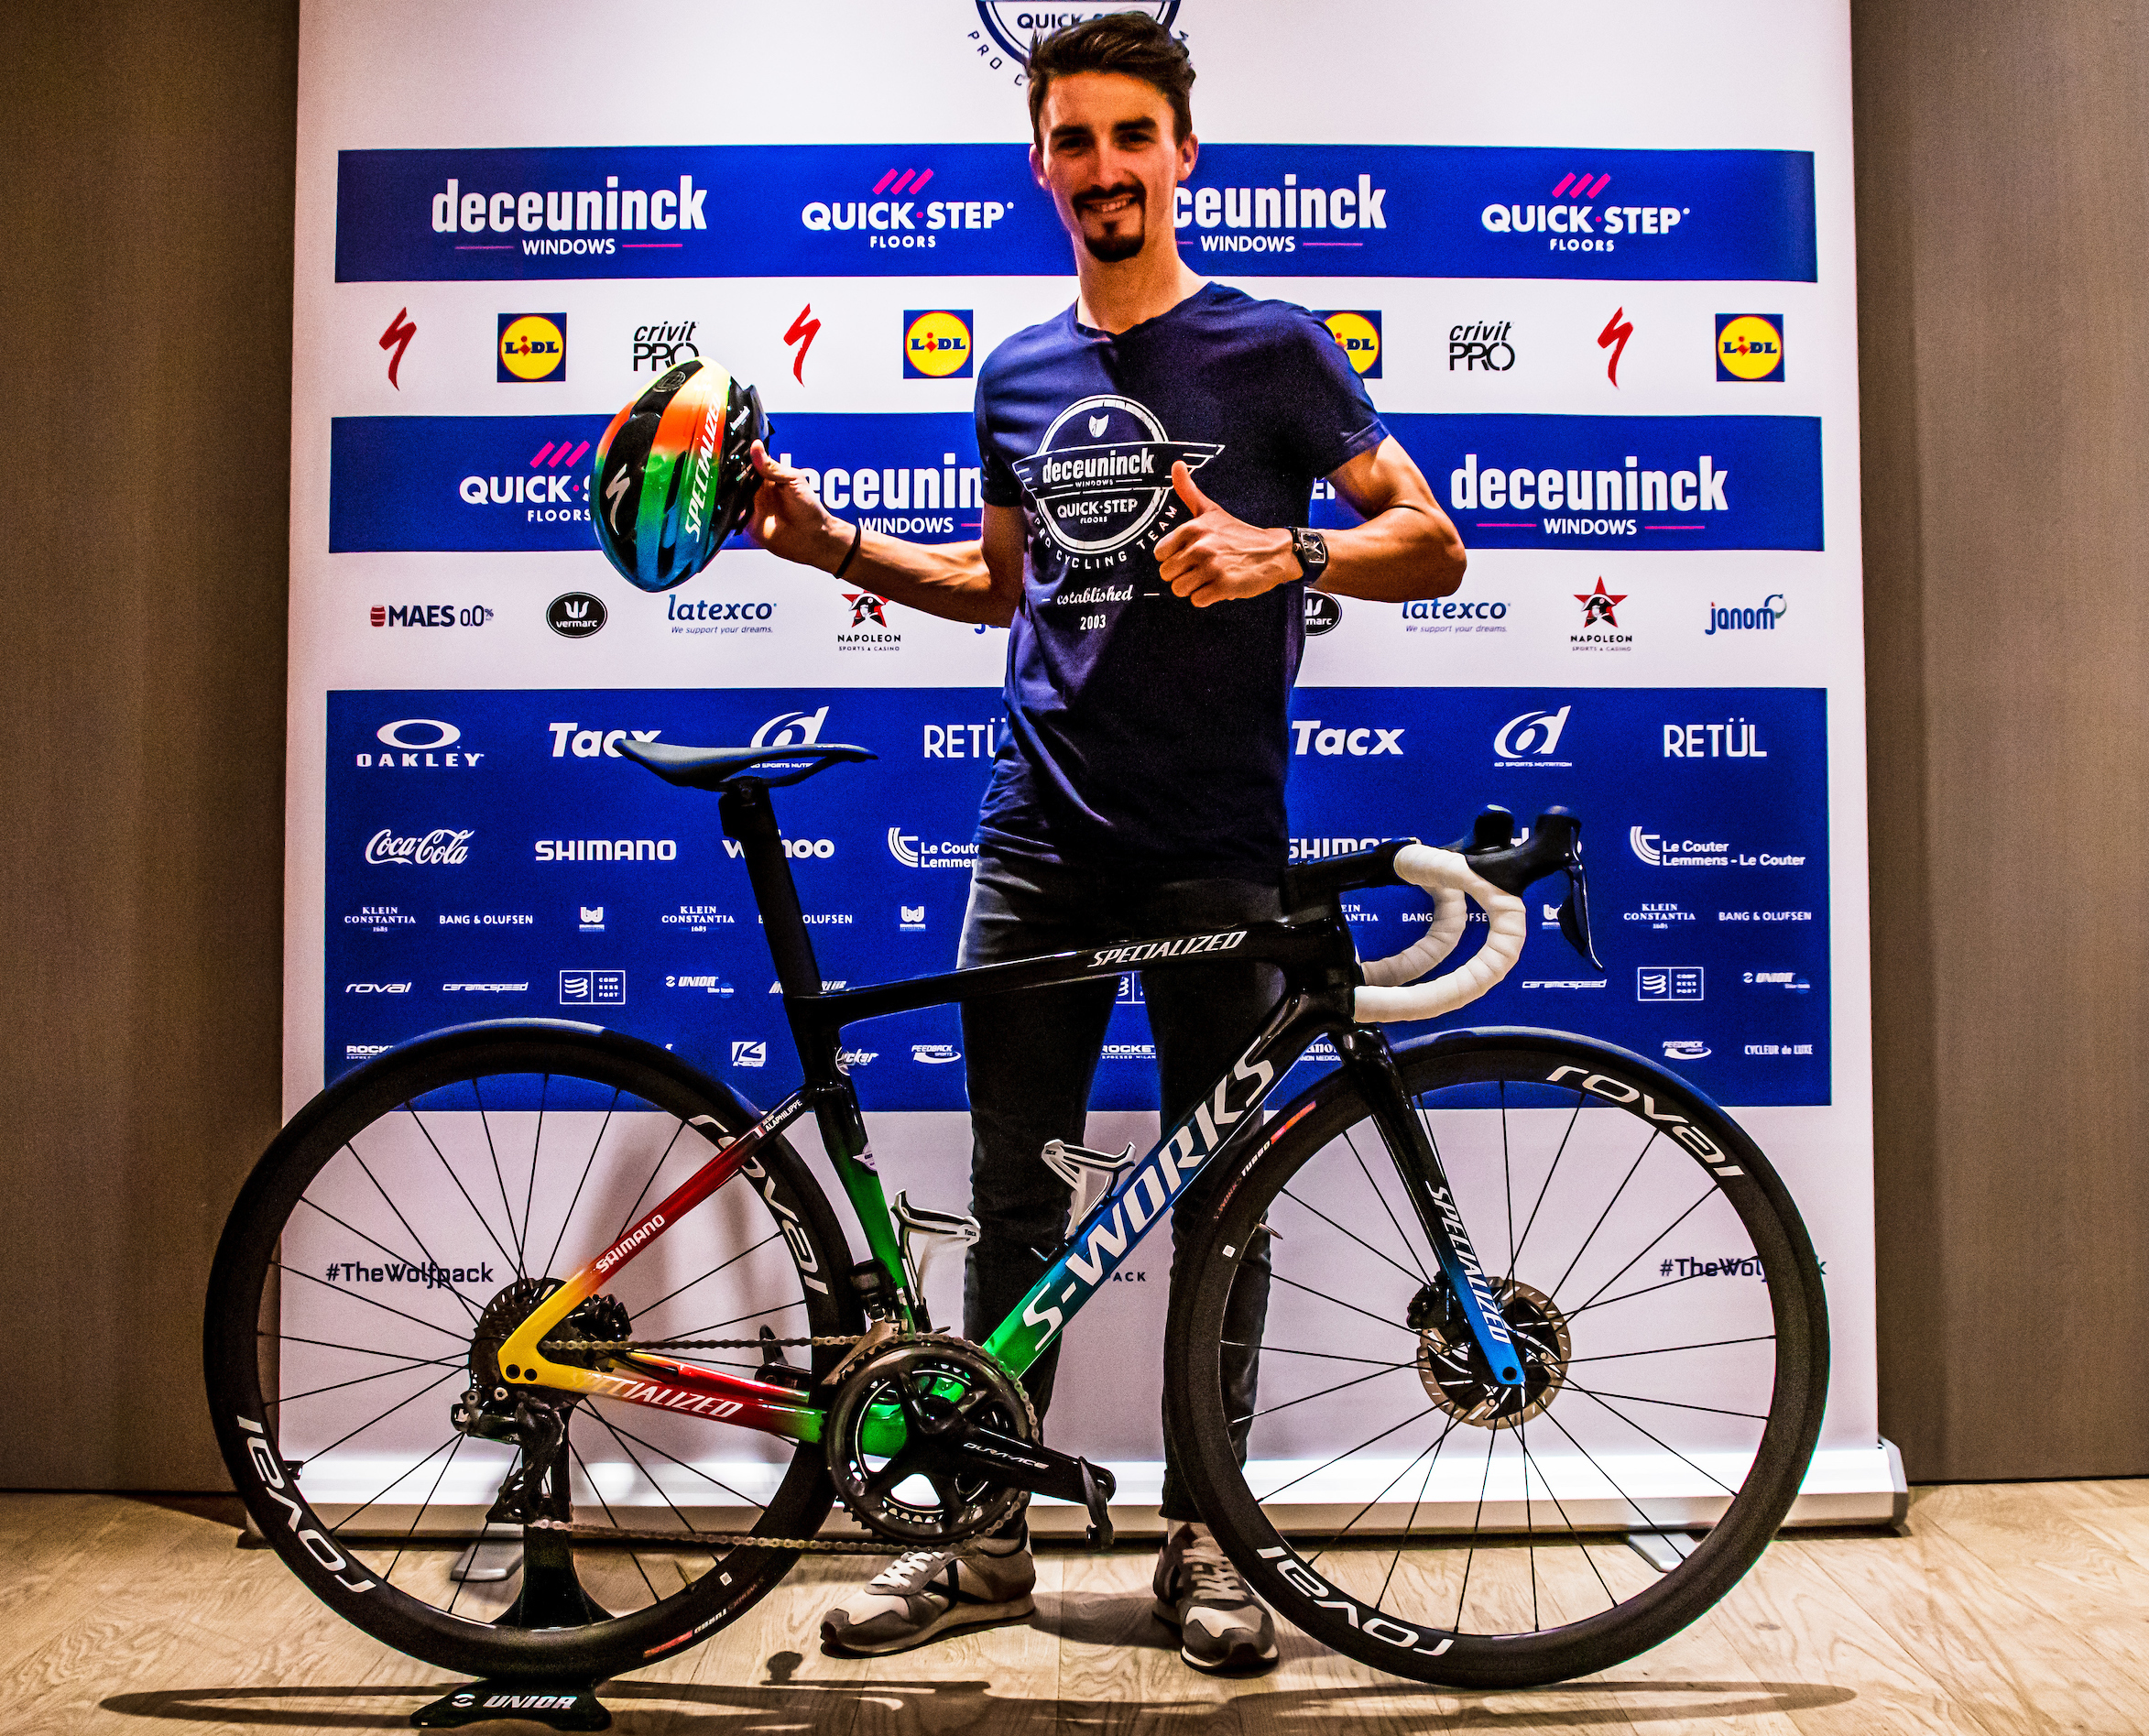 Julian Alaphilippe seems to like his new rainbow-coloured race bike